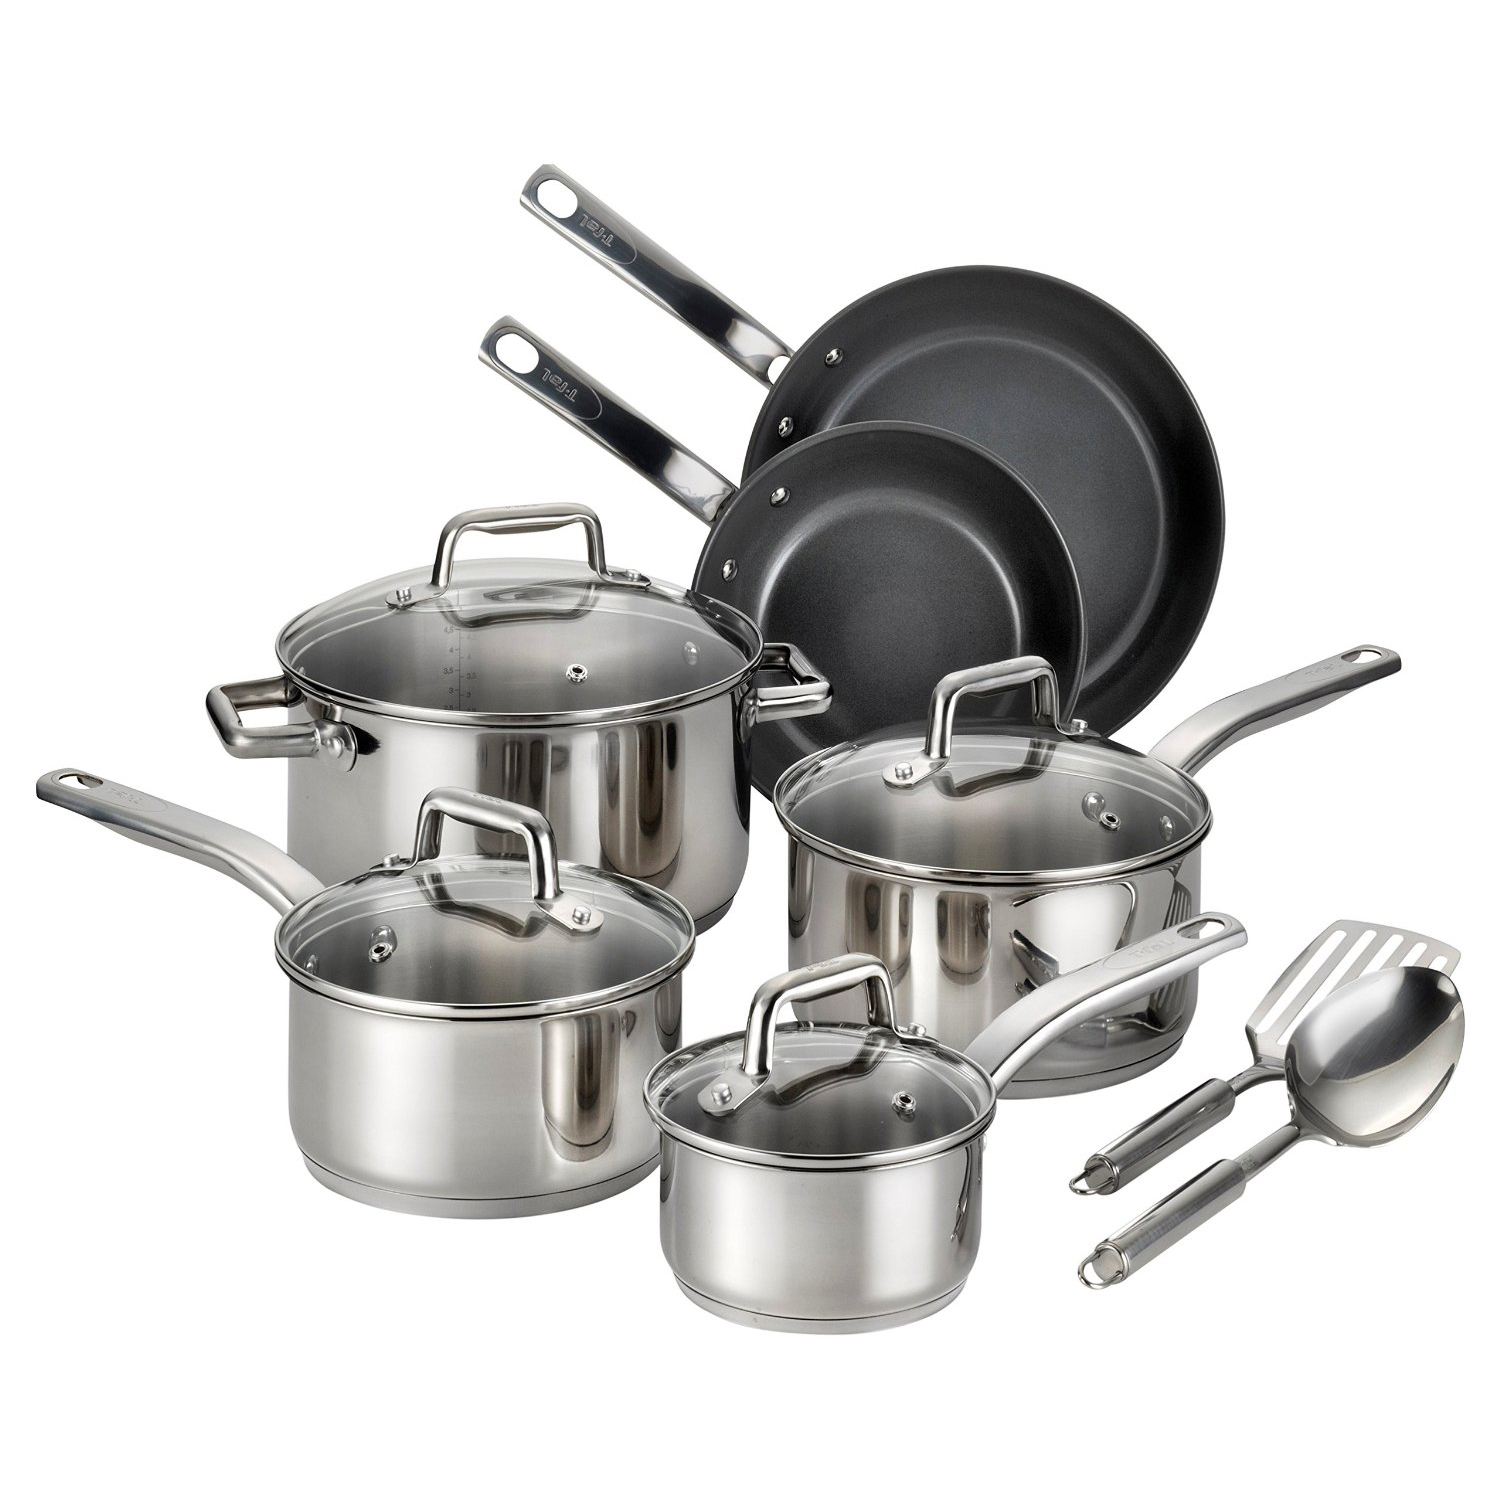 T fal Stainless Steel Precision Review